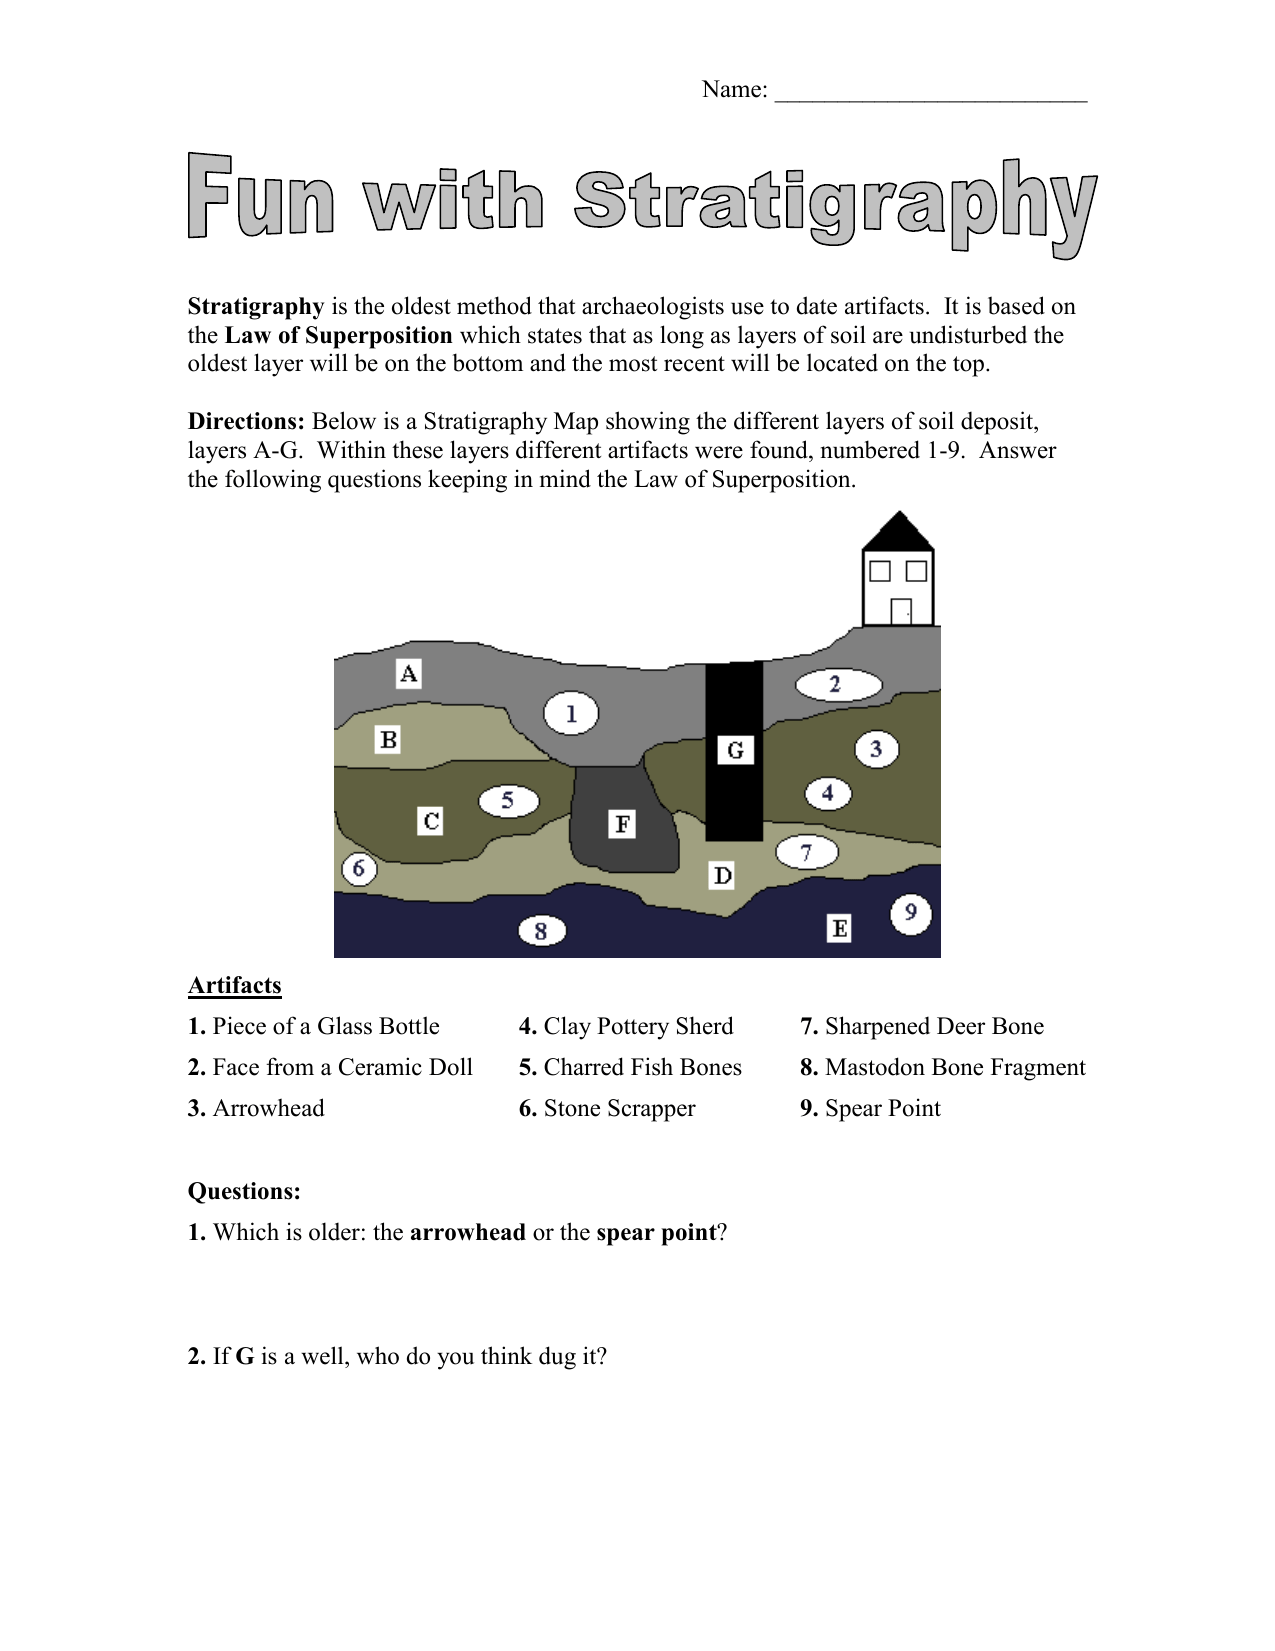 Fun With Stratigraphy Worksheet